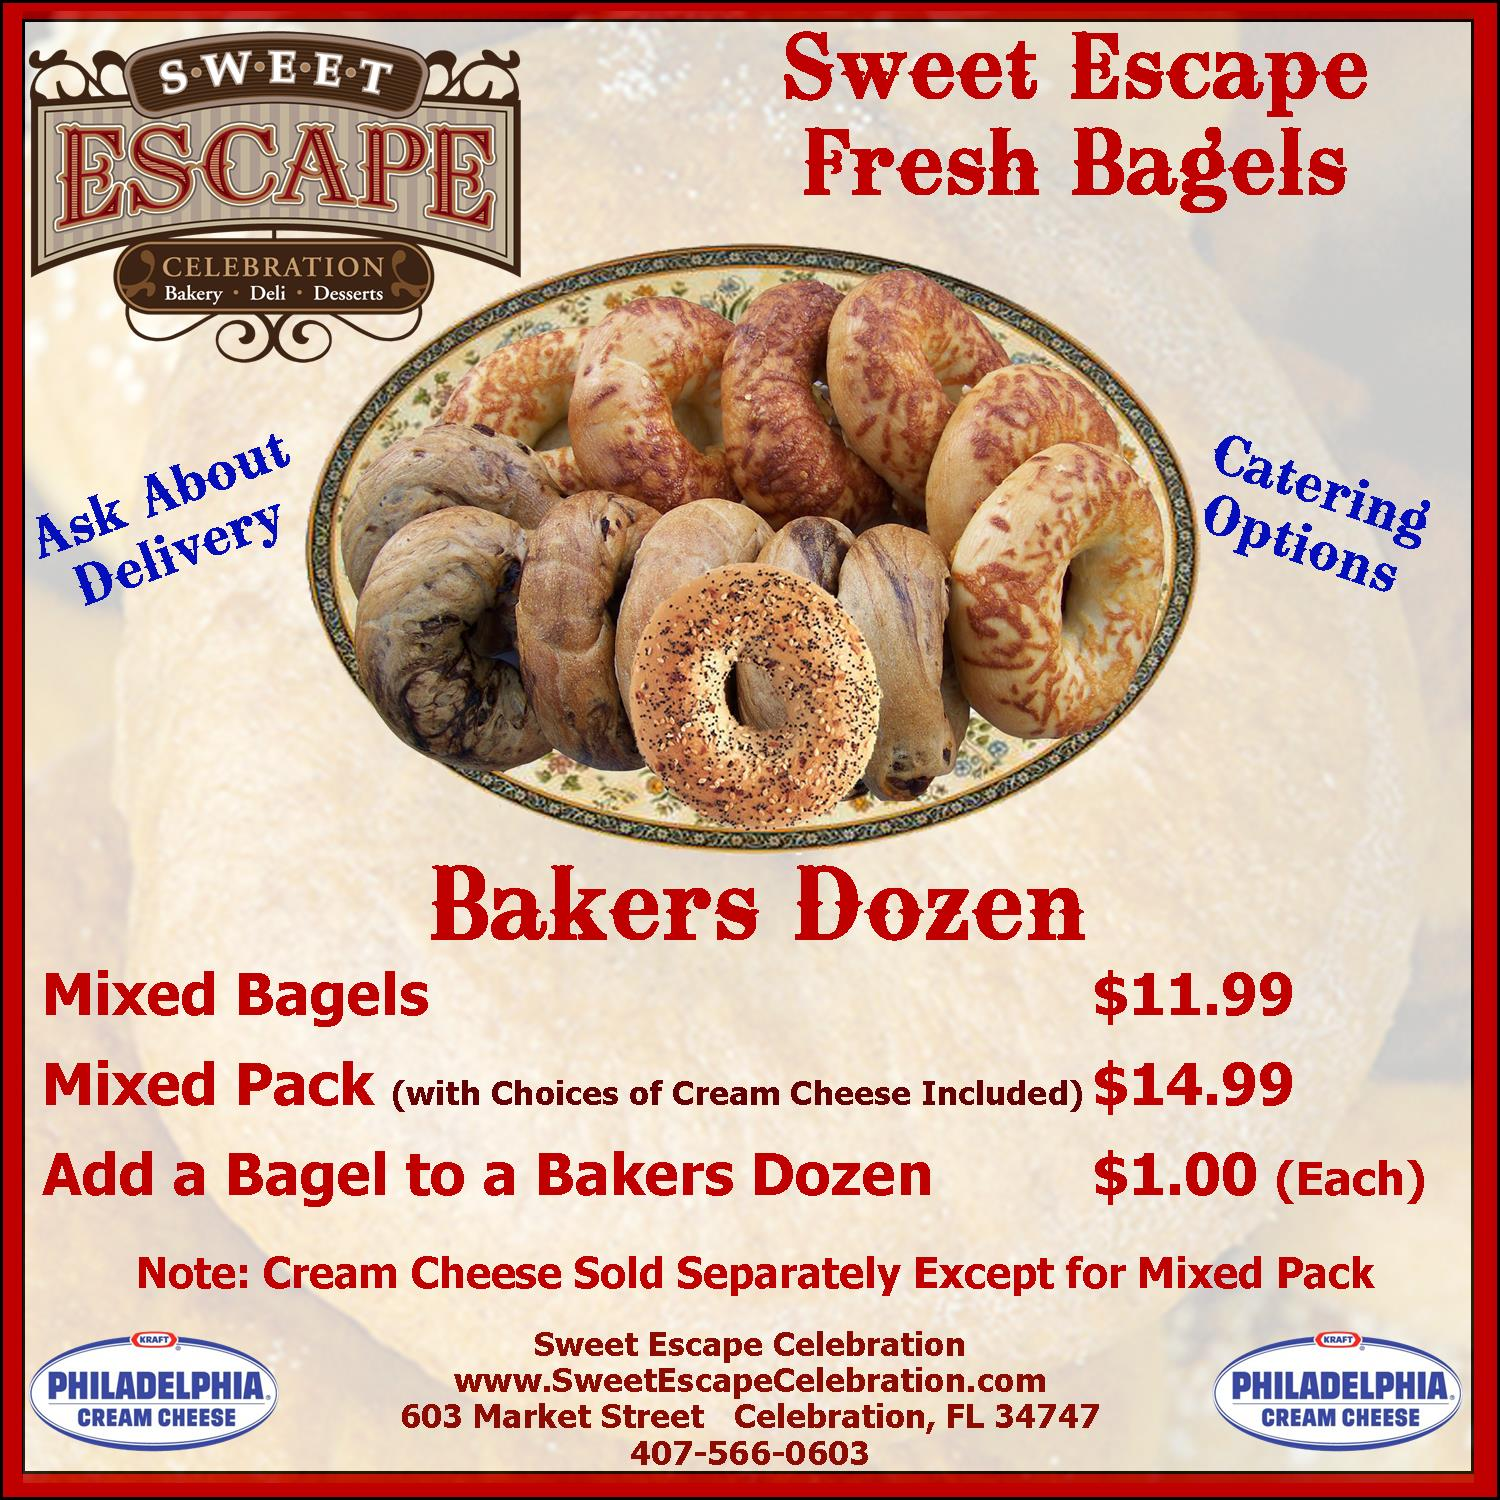 The Bagels - Bakers Dozen